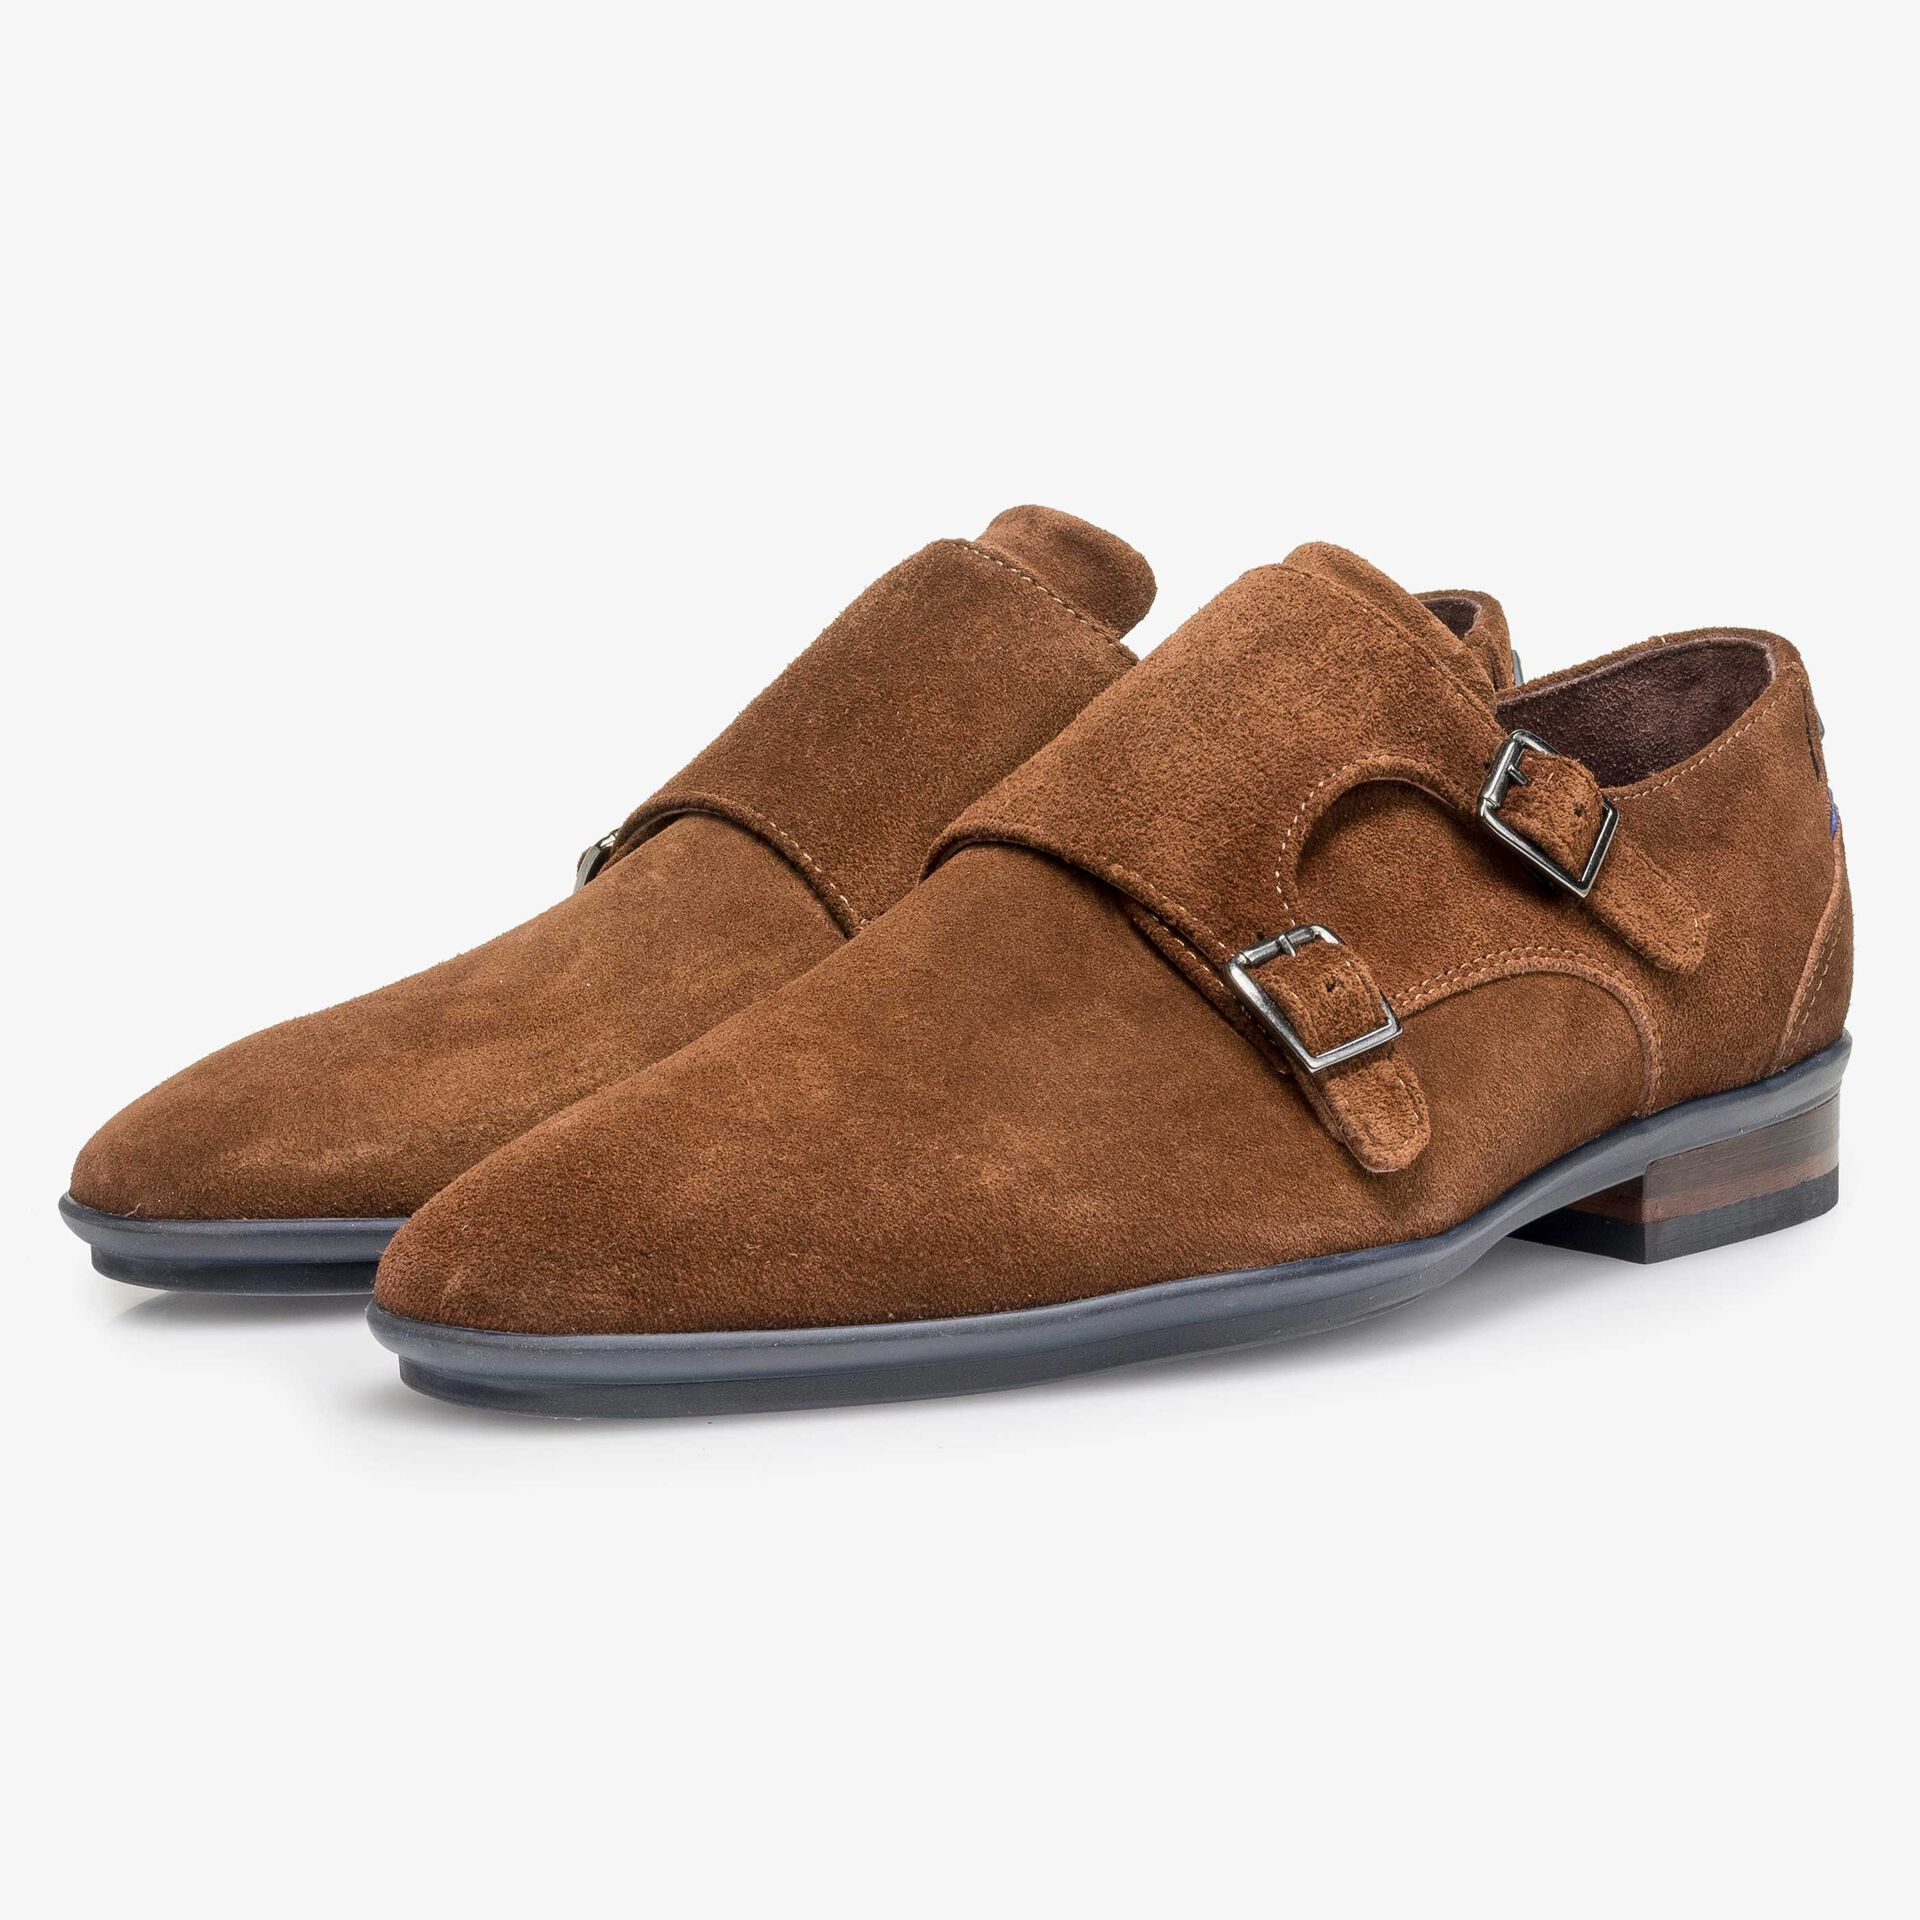 Brown calf suede leather double buckle monk strap